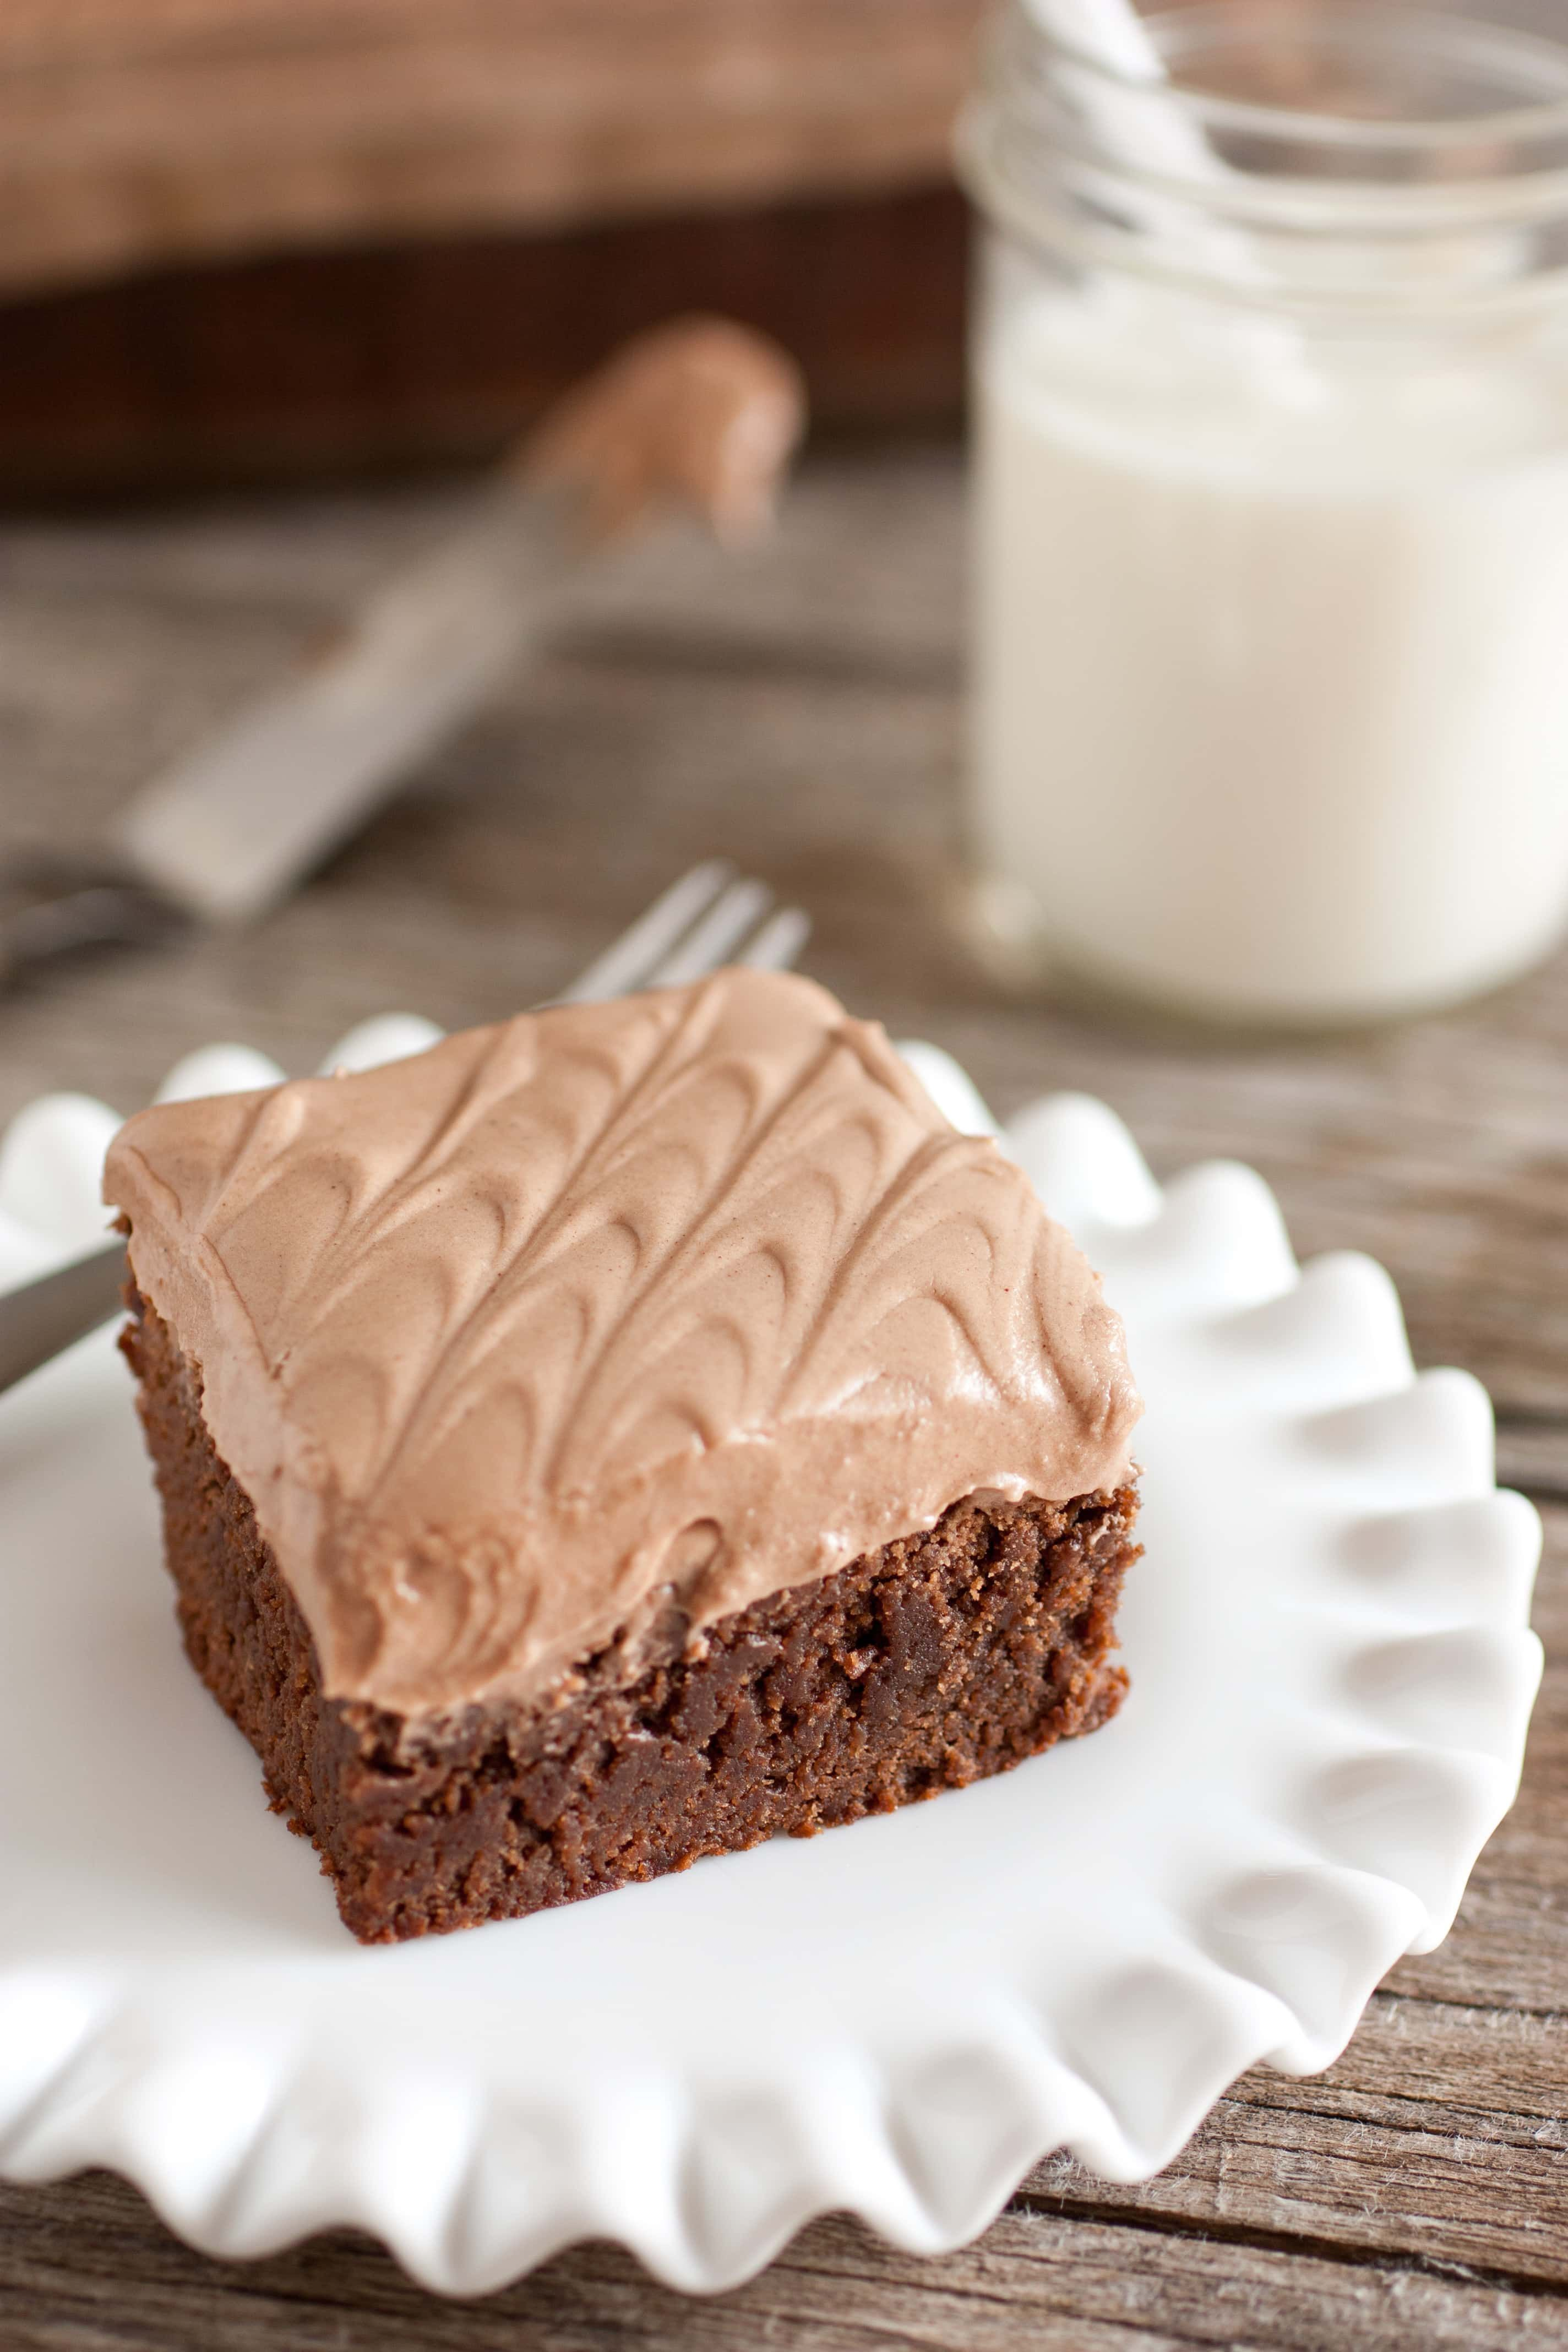 Browniesare topped with the most amazing chocolate frosting. These homemade brownies are almost cake-like, and they're made with cocoa powder instead of chocolate. Be careful, these are addicting!#chewybrownies